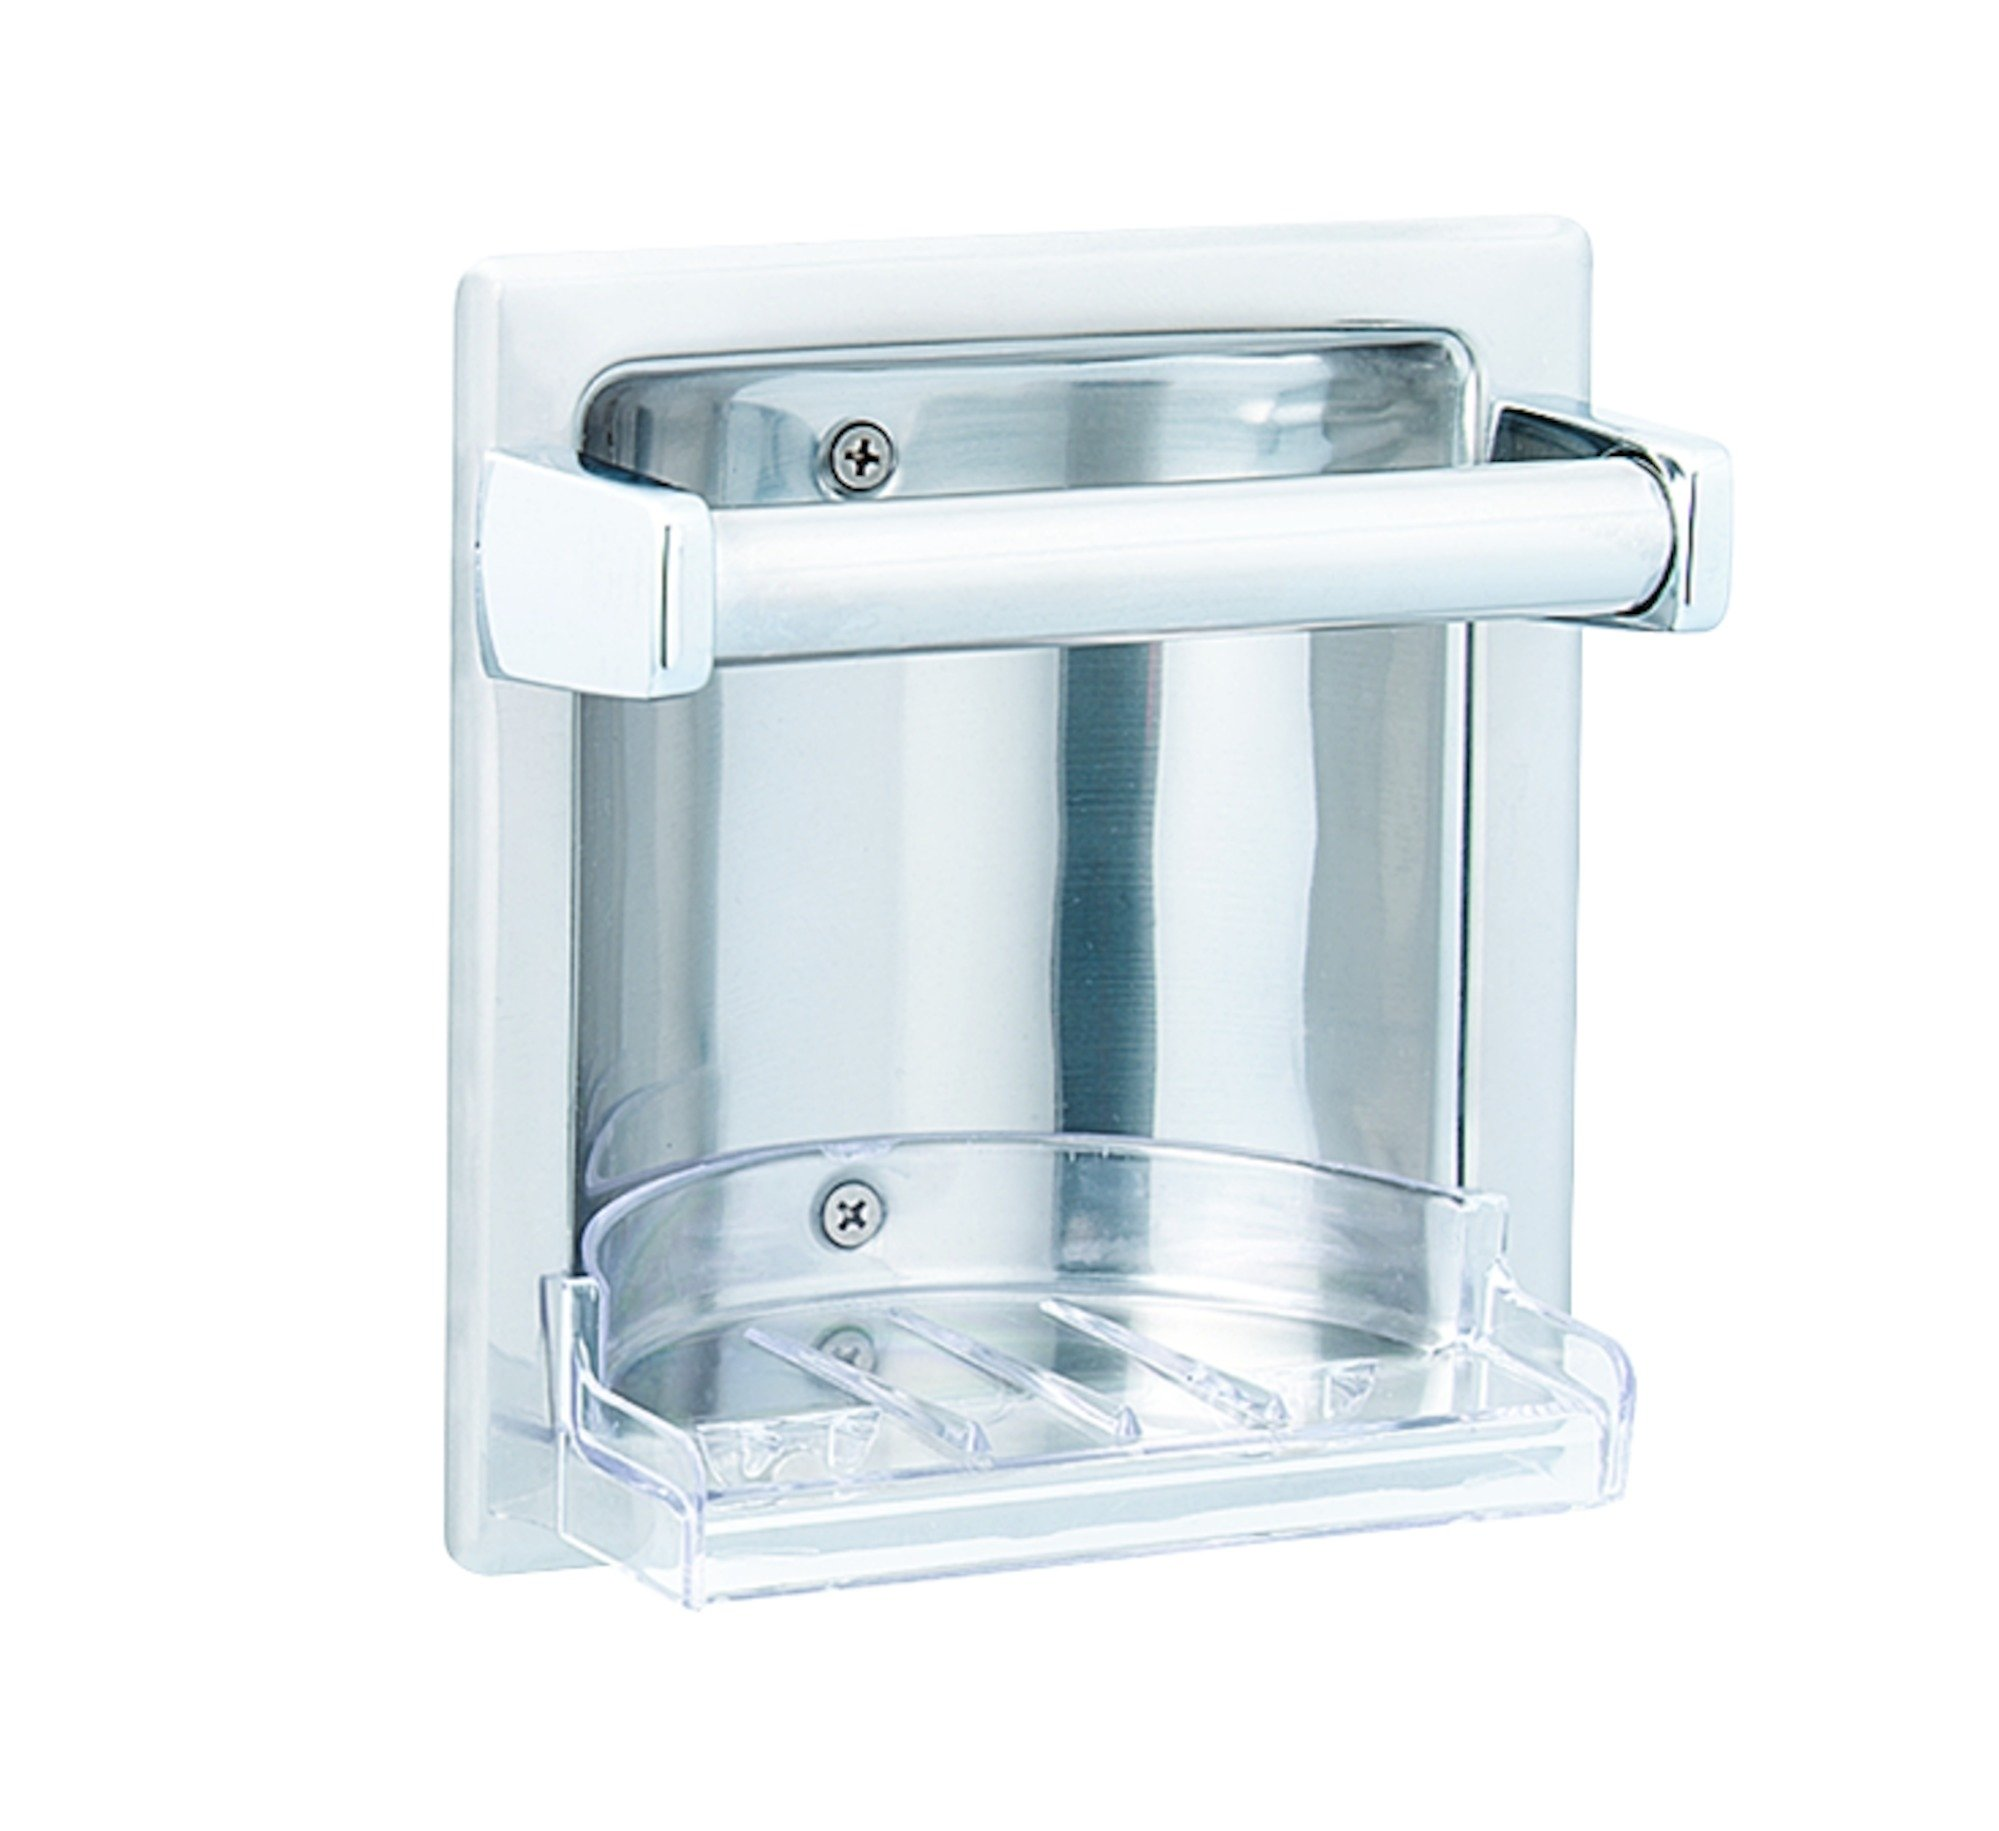 Soap Dish Recessed 9362 | Accurate Door & Hardware, Inc.